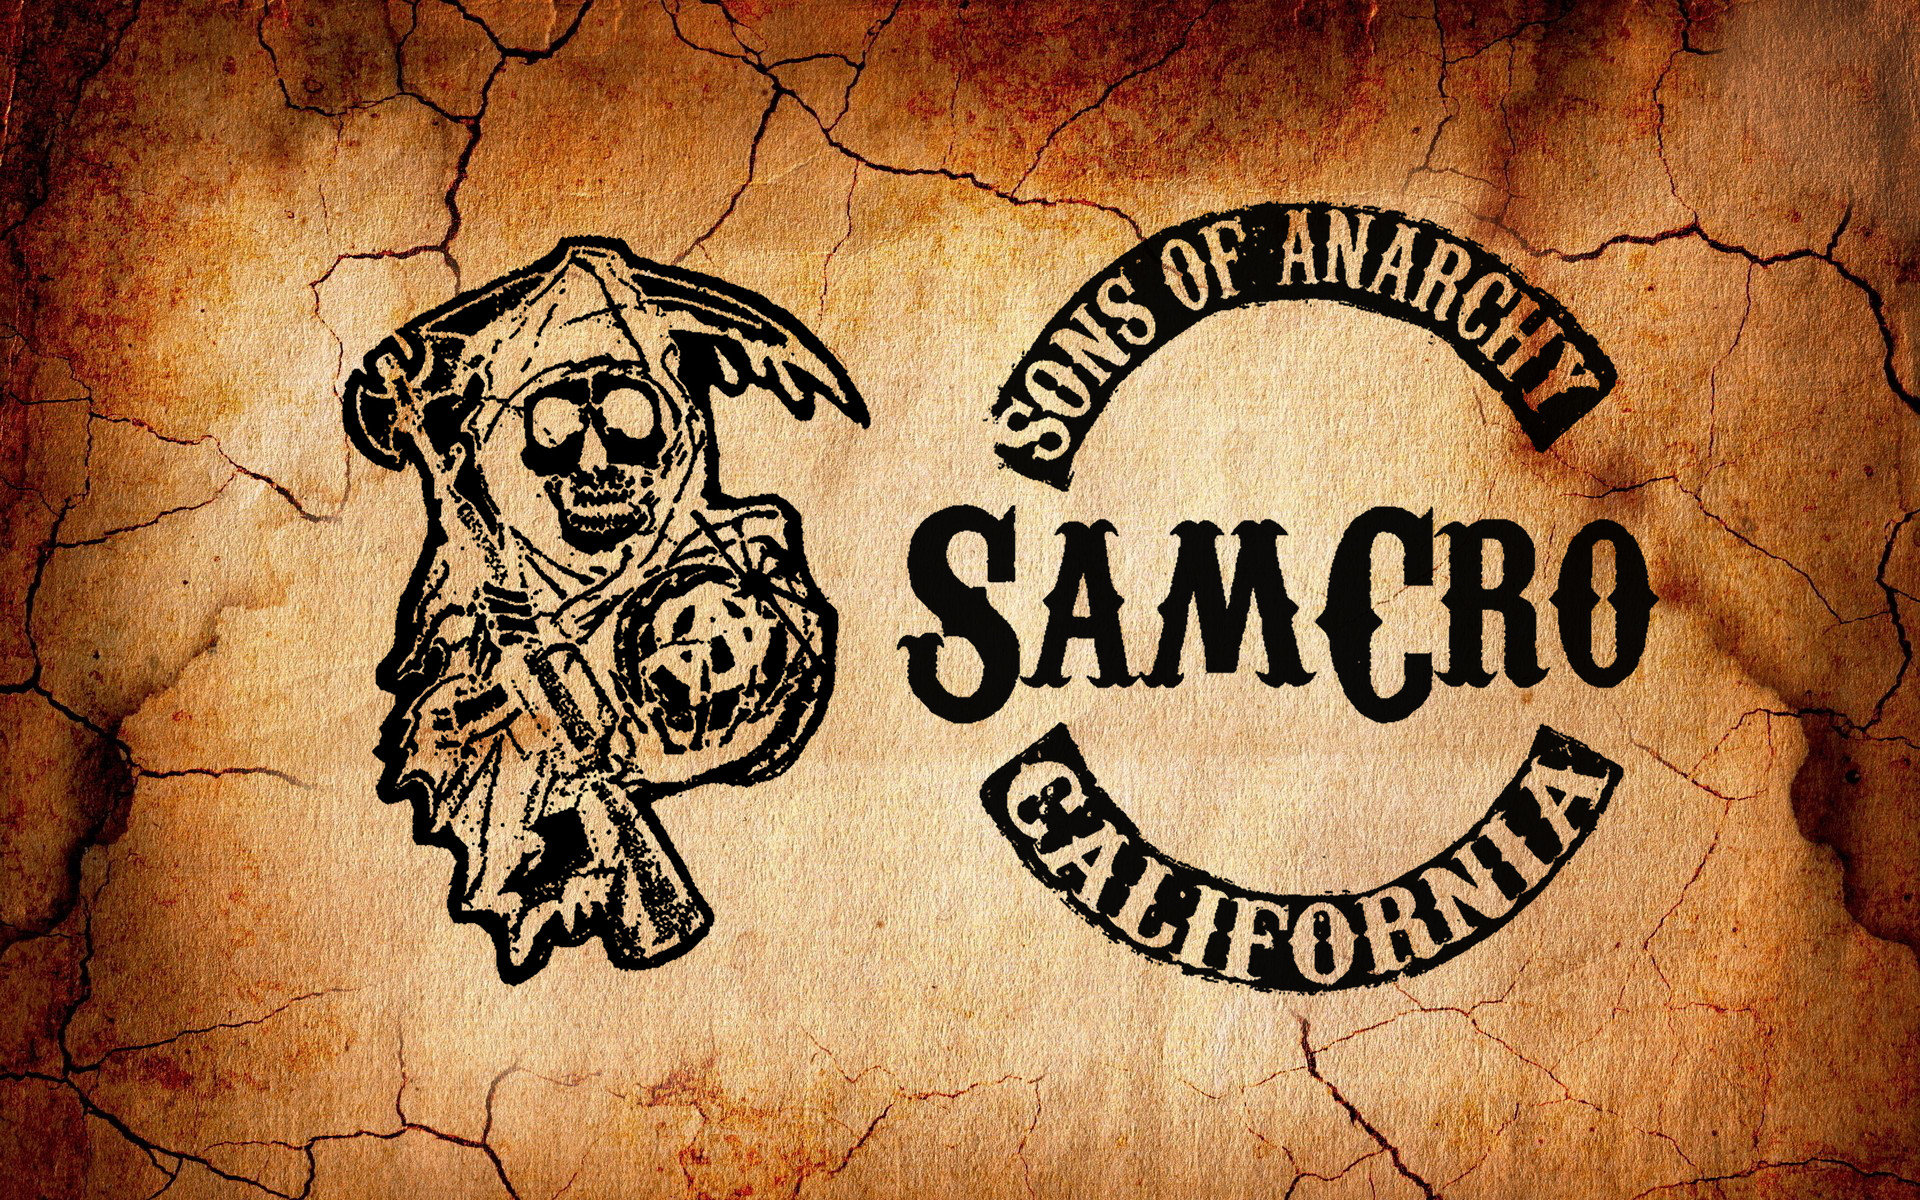 Sons of anarchy wallpapers 1920x1200 desktop backgrounds free sons of anarchy high quality background id187574 for hd 1920x1200 computer voltagebd Choice Image